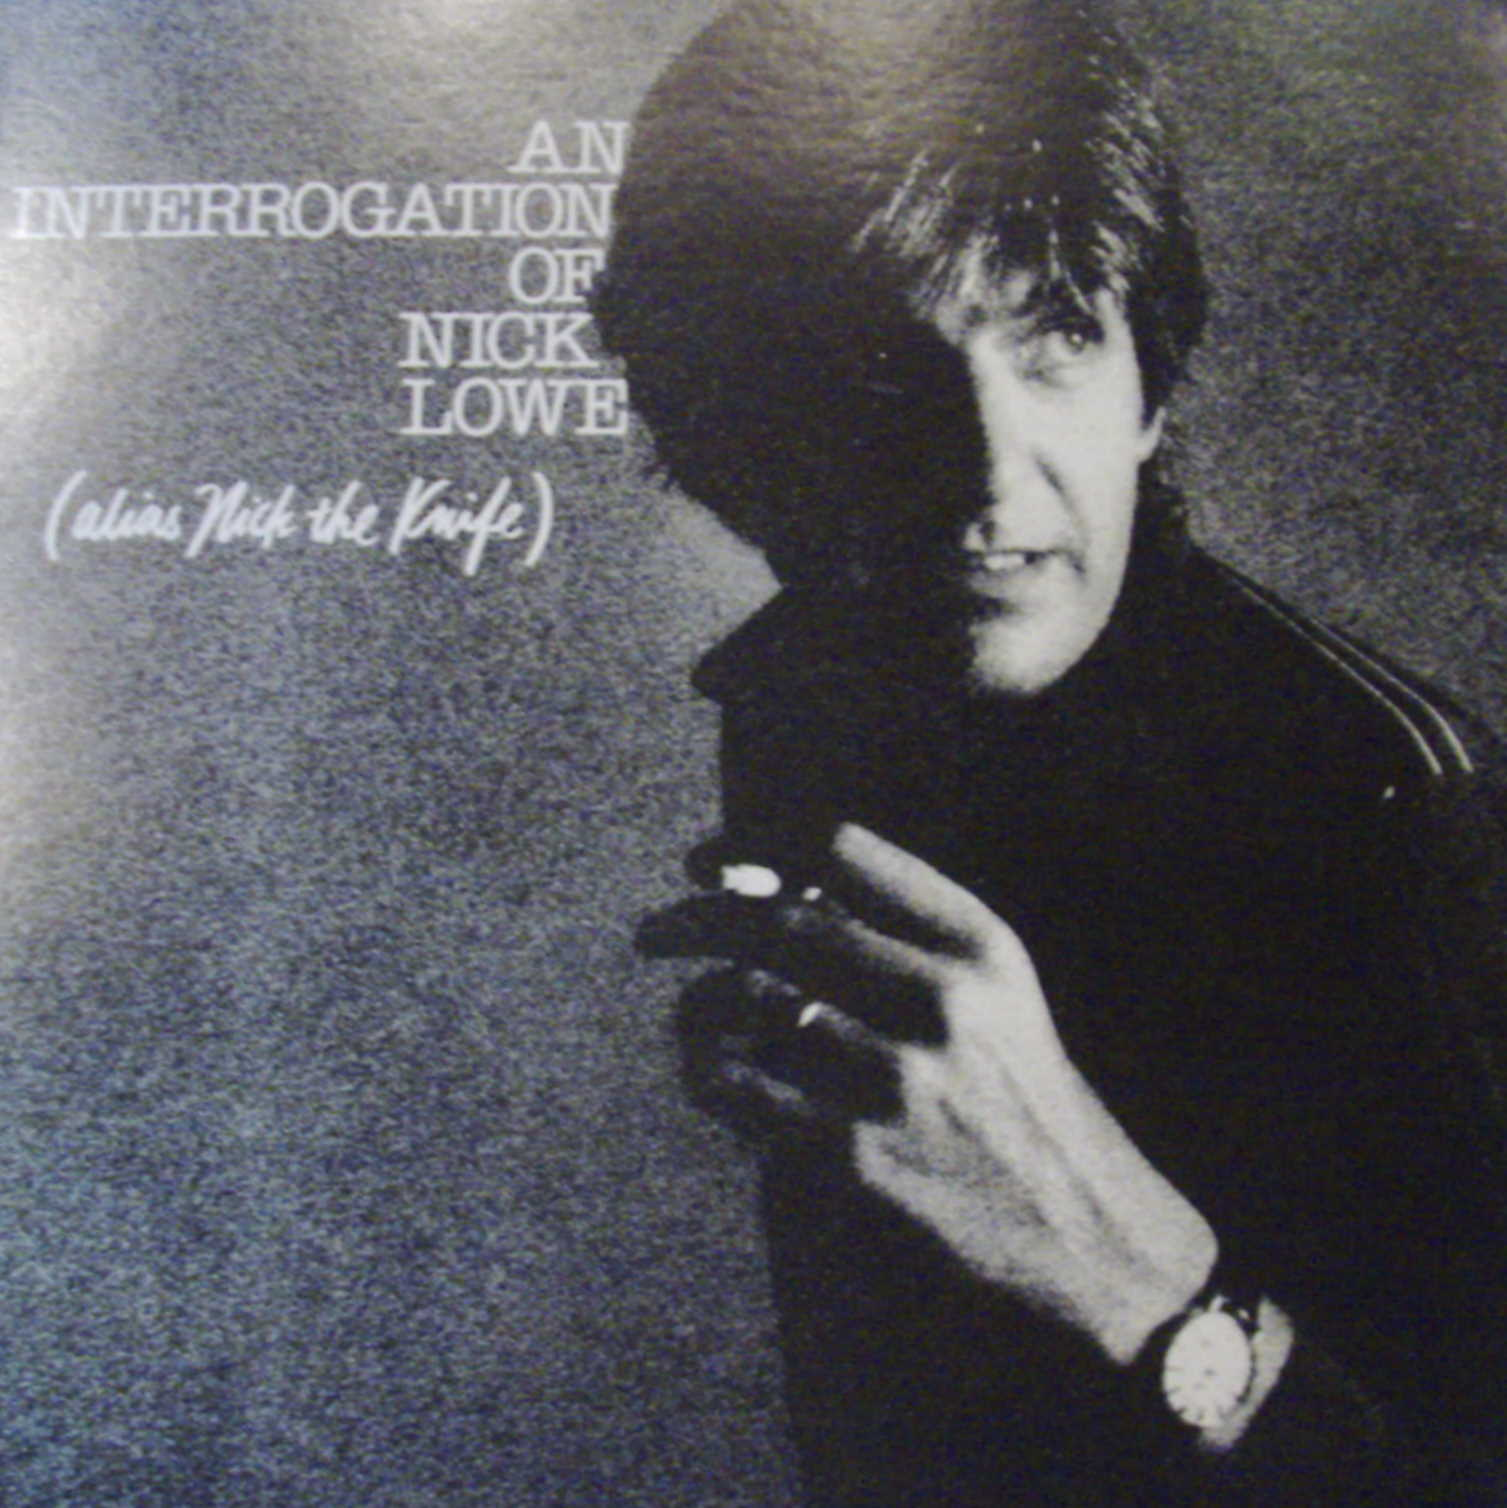 Nick Lowe / An Interrogation of Nick Lowe